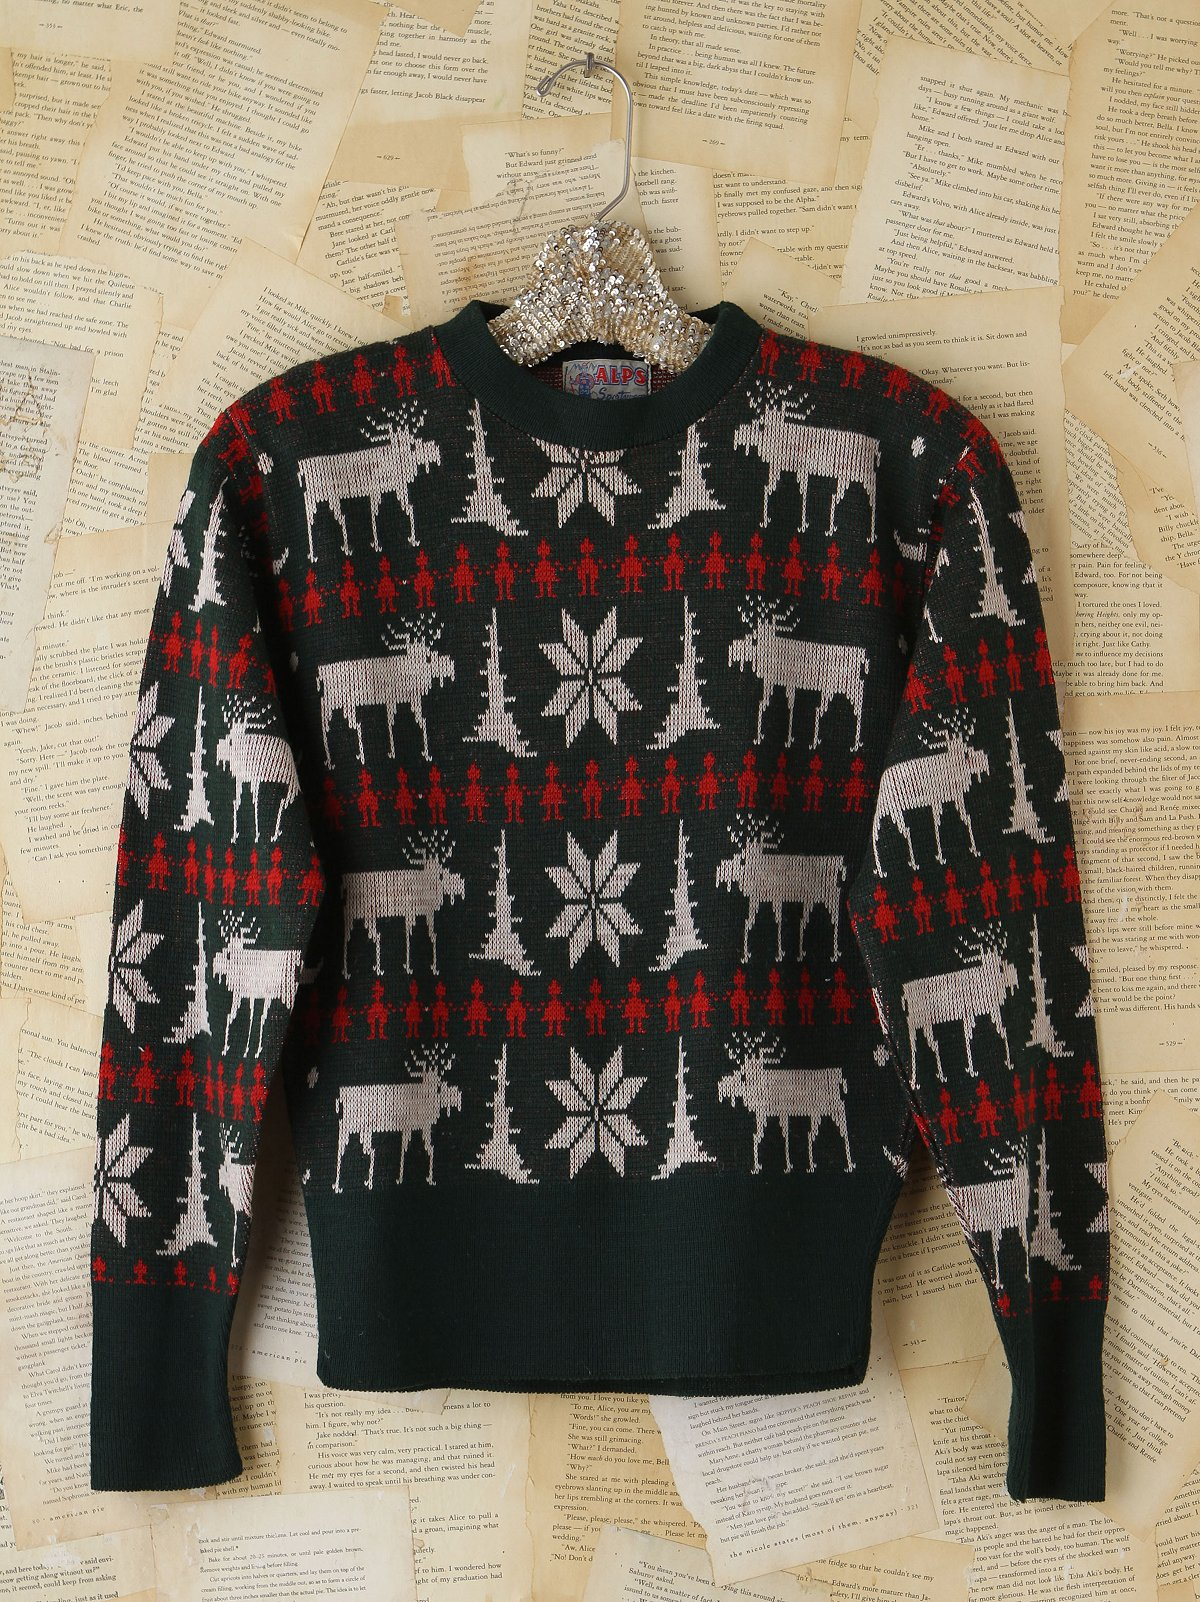 Vintage Reindeer Patterned Sweater